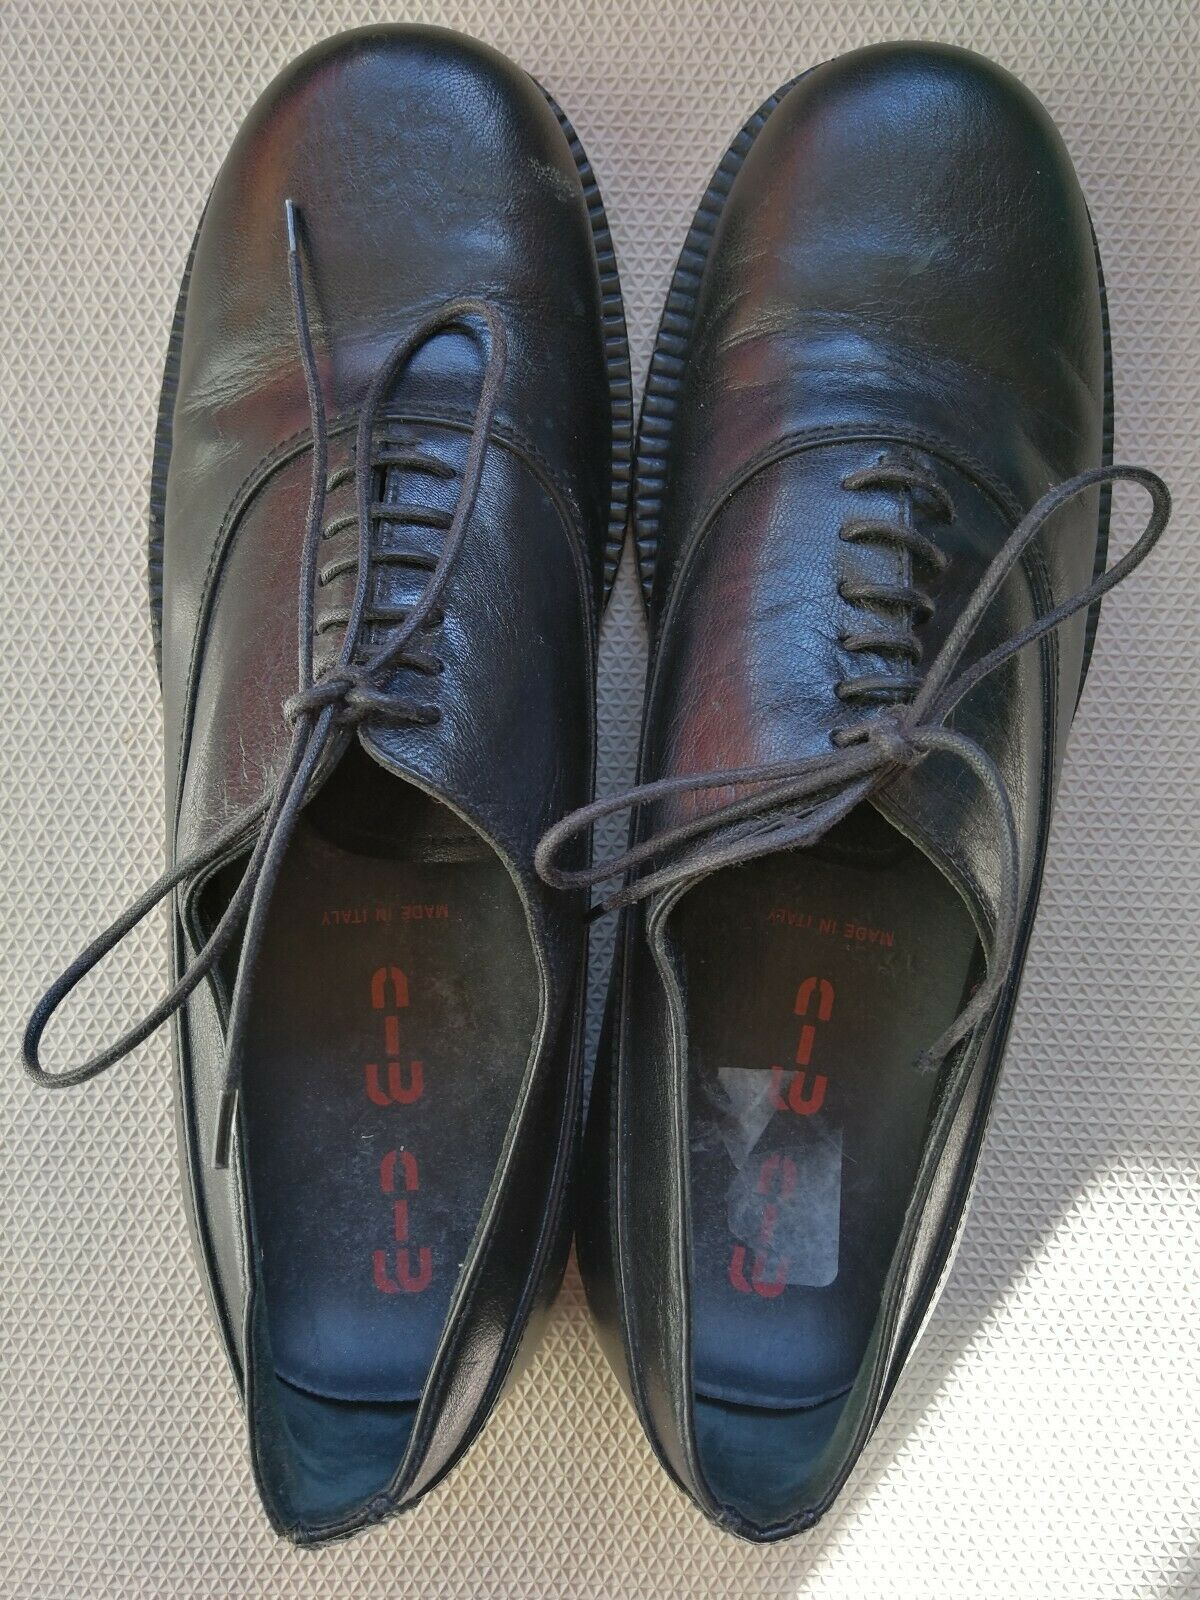 MIU MIU MIUMIU Black Leather Dress Oxfords Lace-Up shoes Size 7 Excellent Cond.